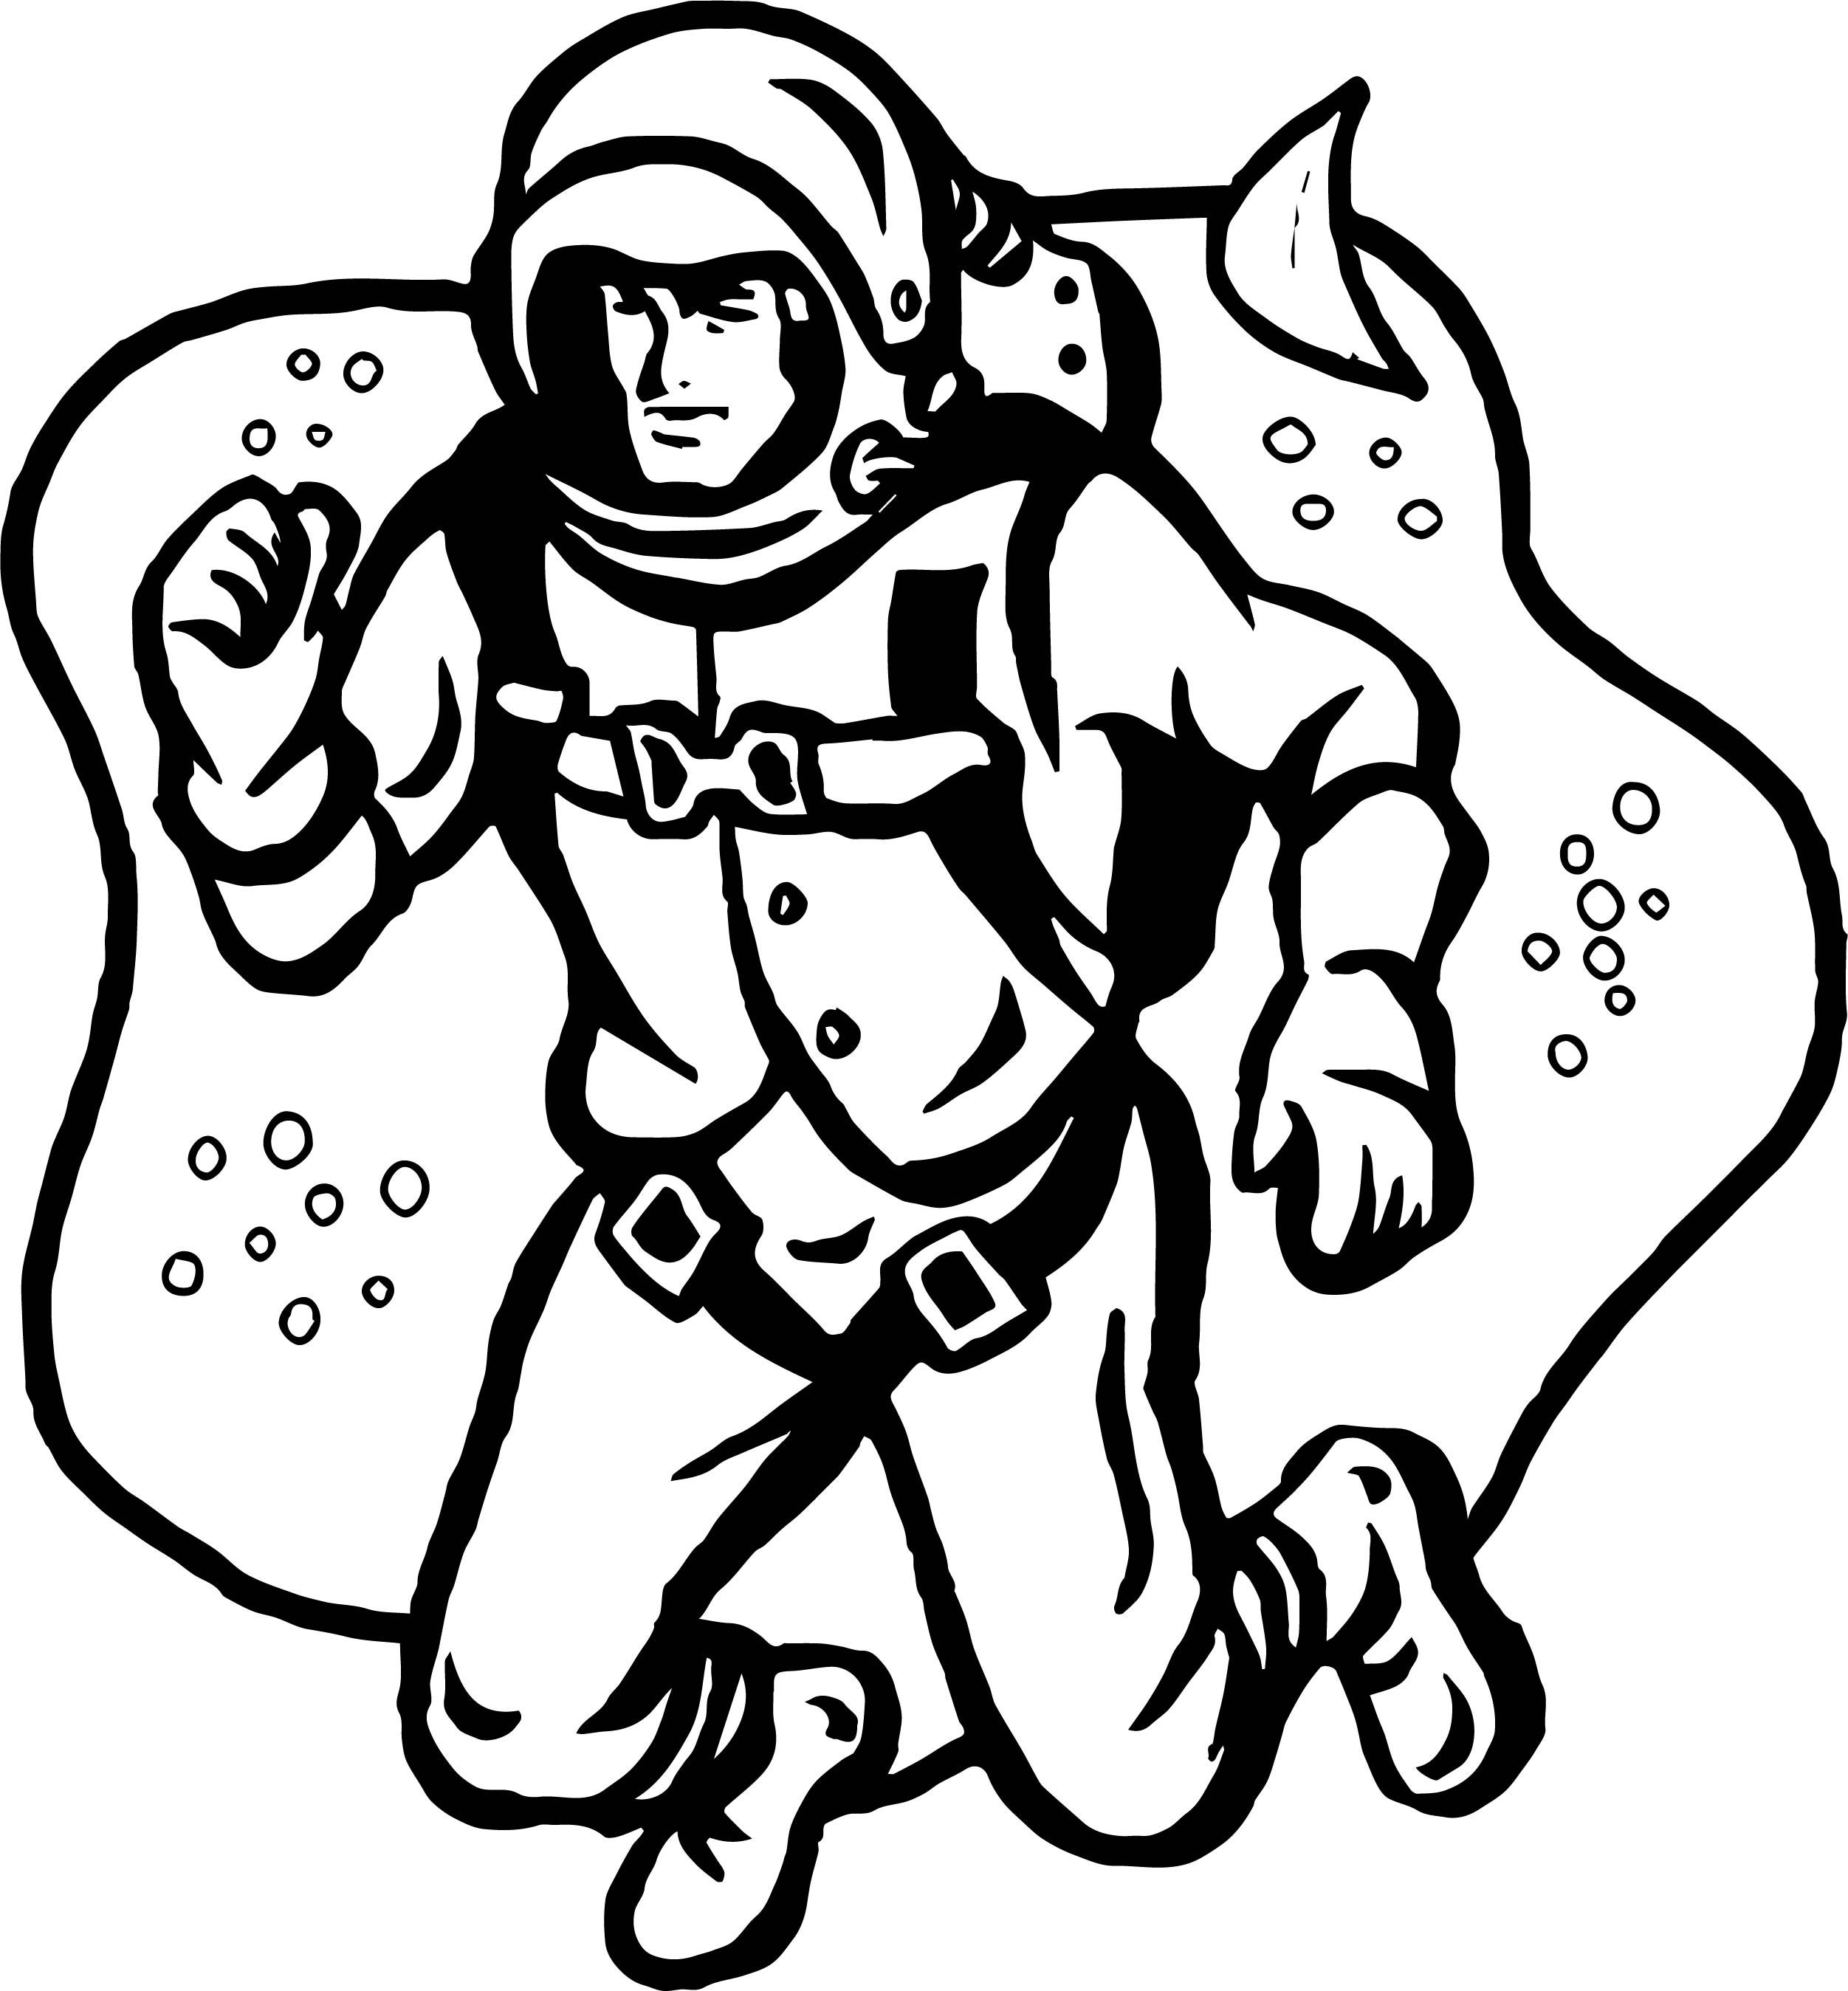 astronaut coloring for kids printable astronaut coloring pages for kids astronaut for coloring kids